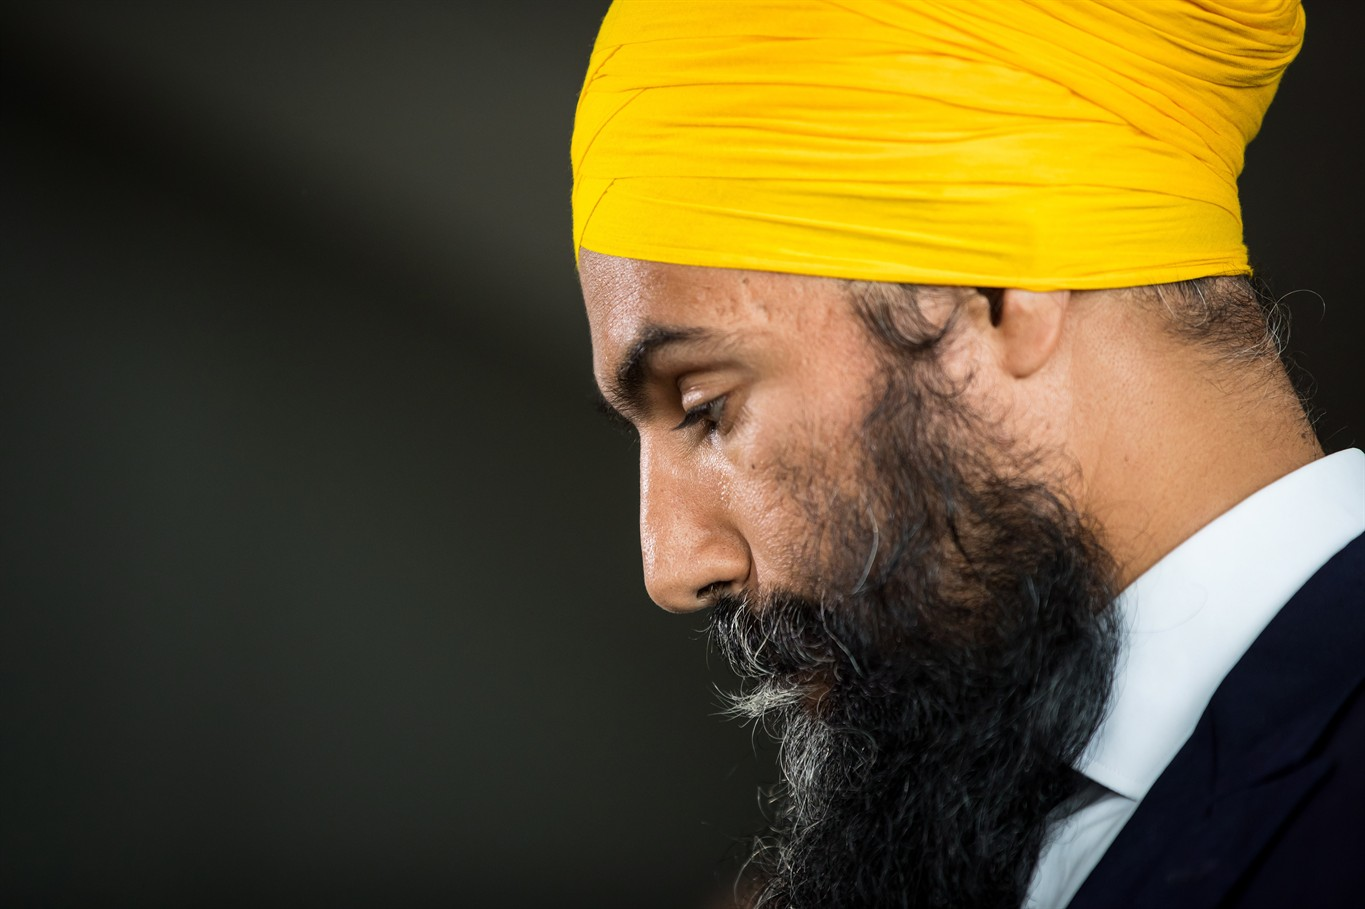 It's never been this bad': NDP struggles to nominate